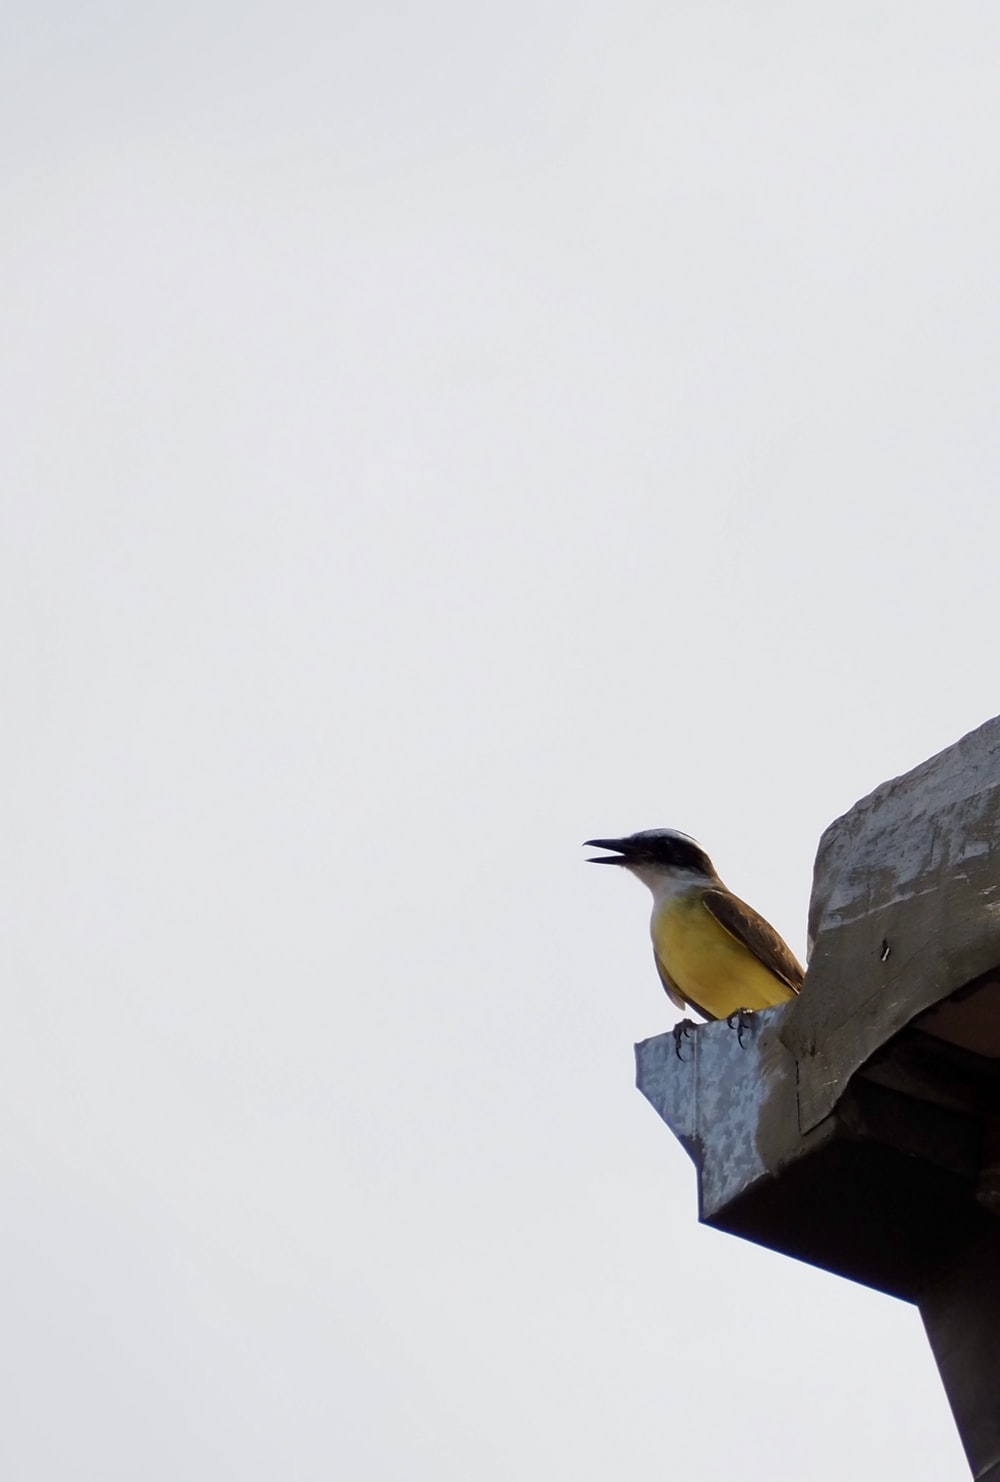 yellow and gray bird on gray concrete post